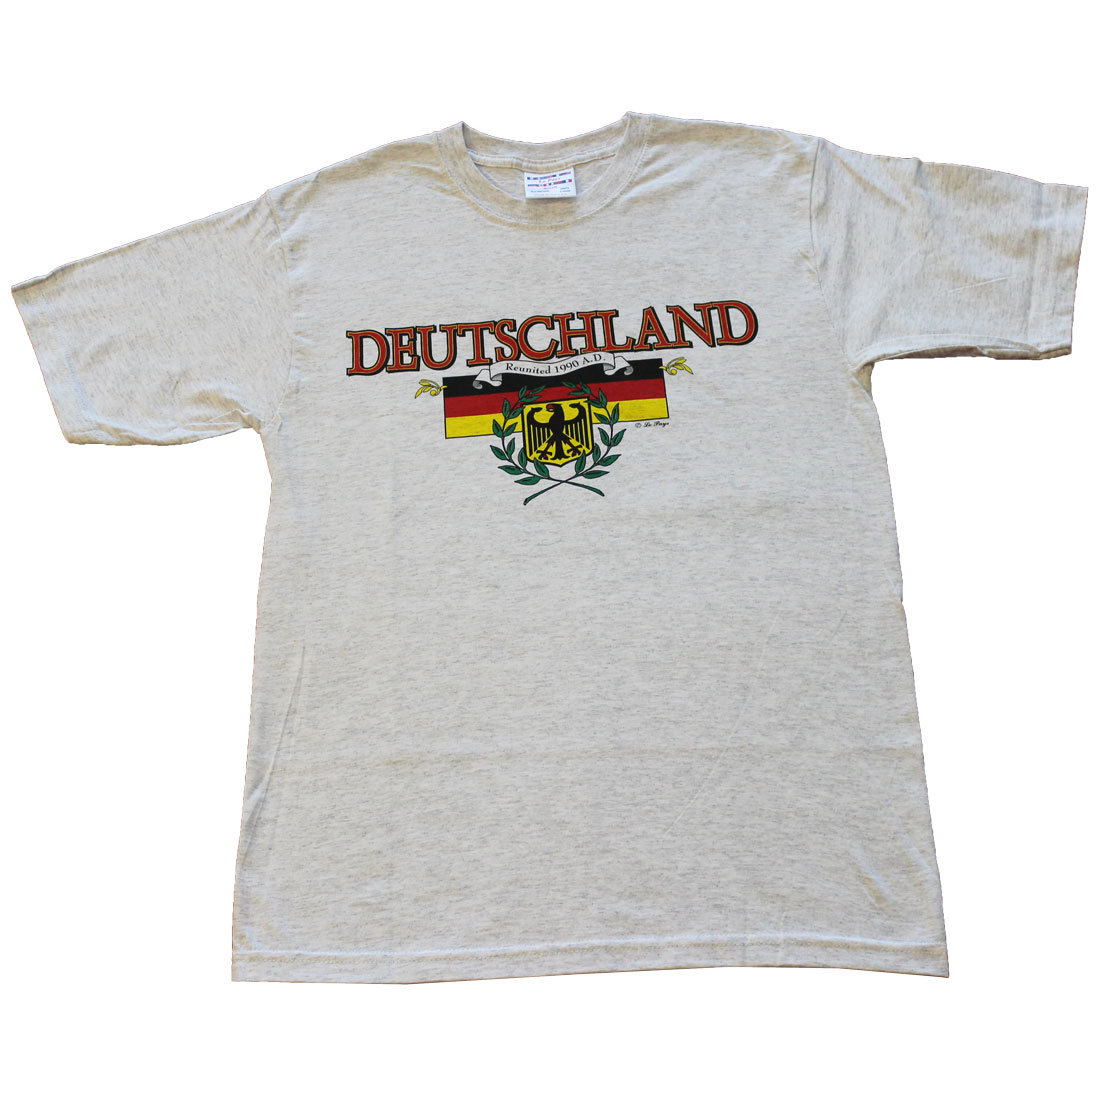 Germany Legacy T-Shirt (S)